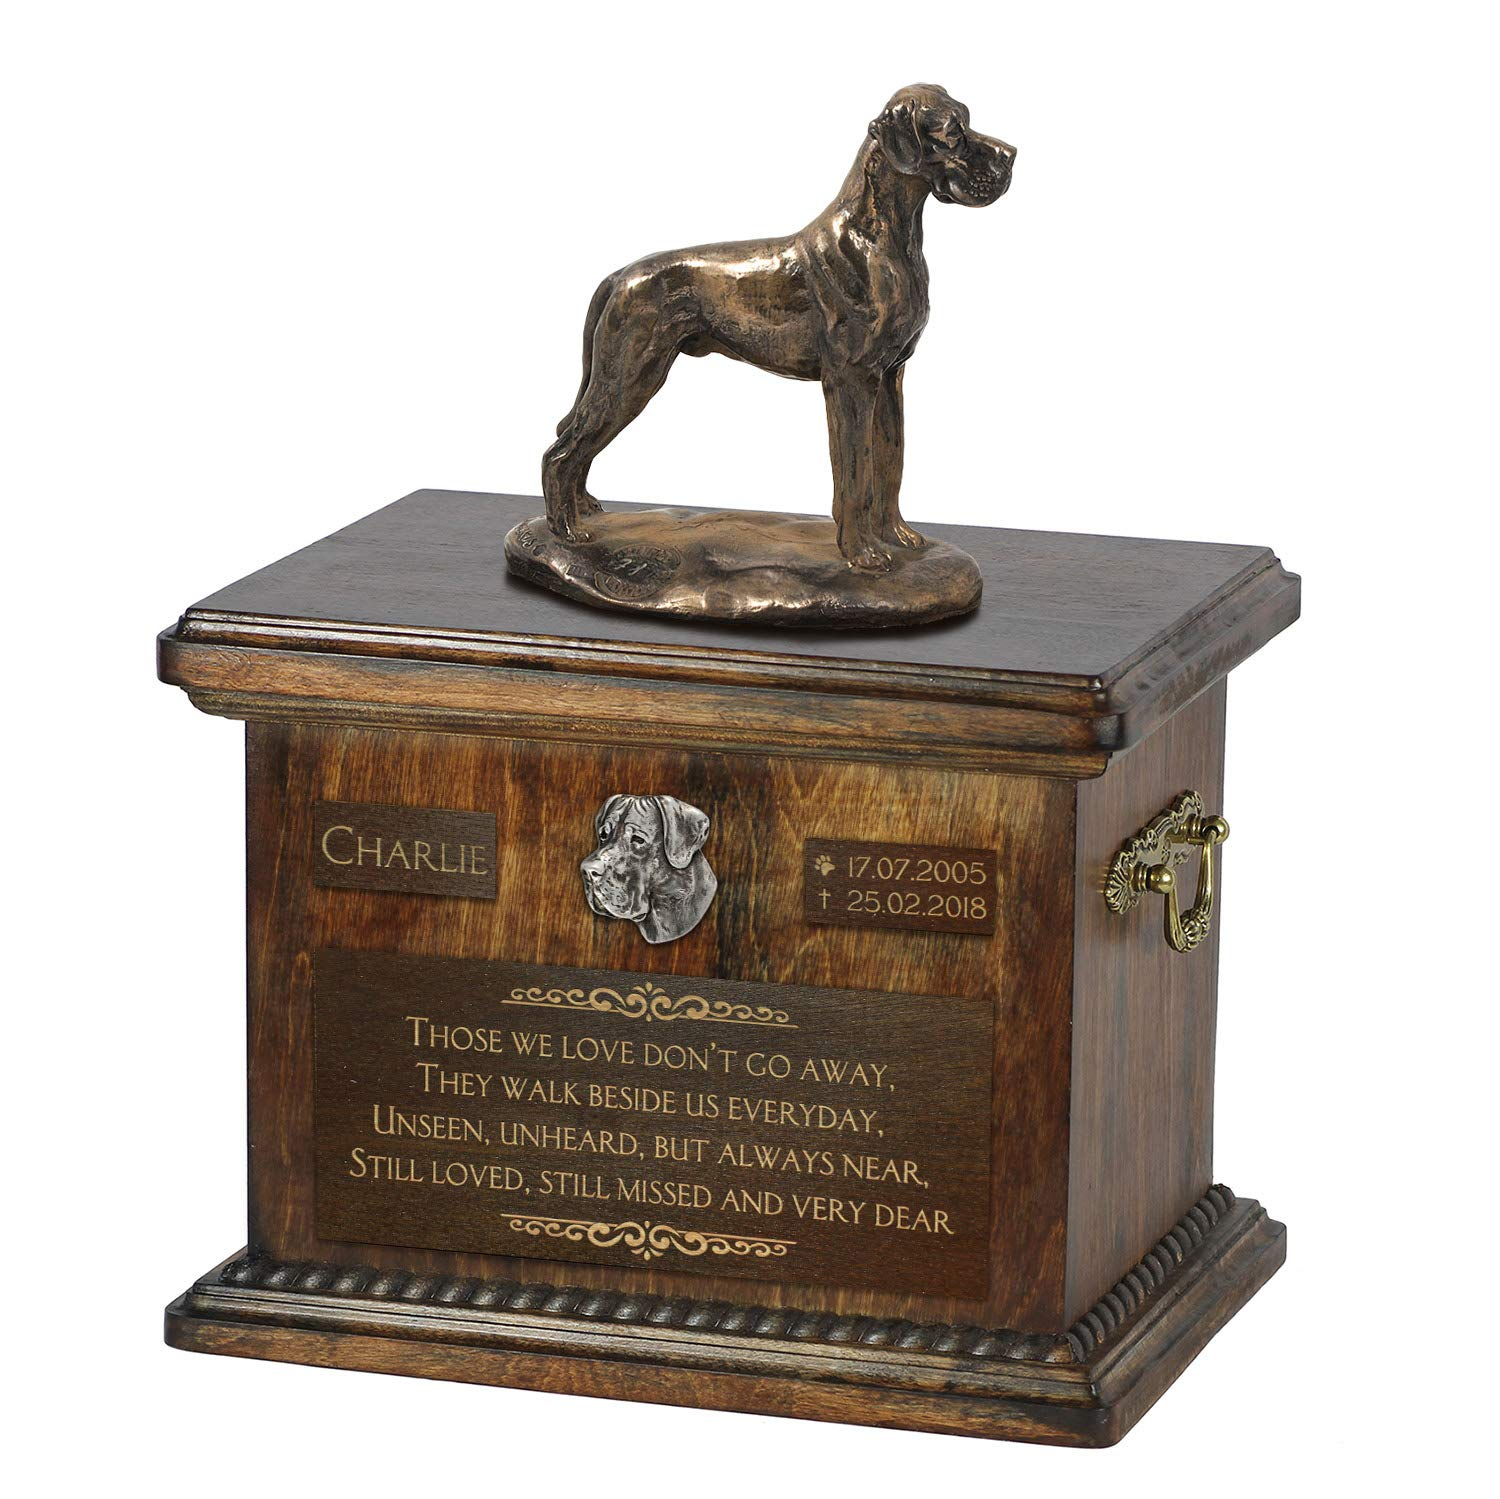 Great Dane uncropped, Urn for Dog Ashes Memorial with Statue, Pet's Name and Quote ArtDog Personalized